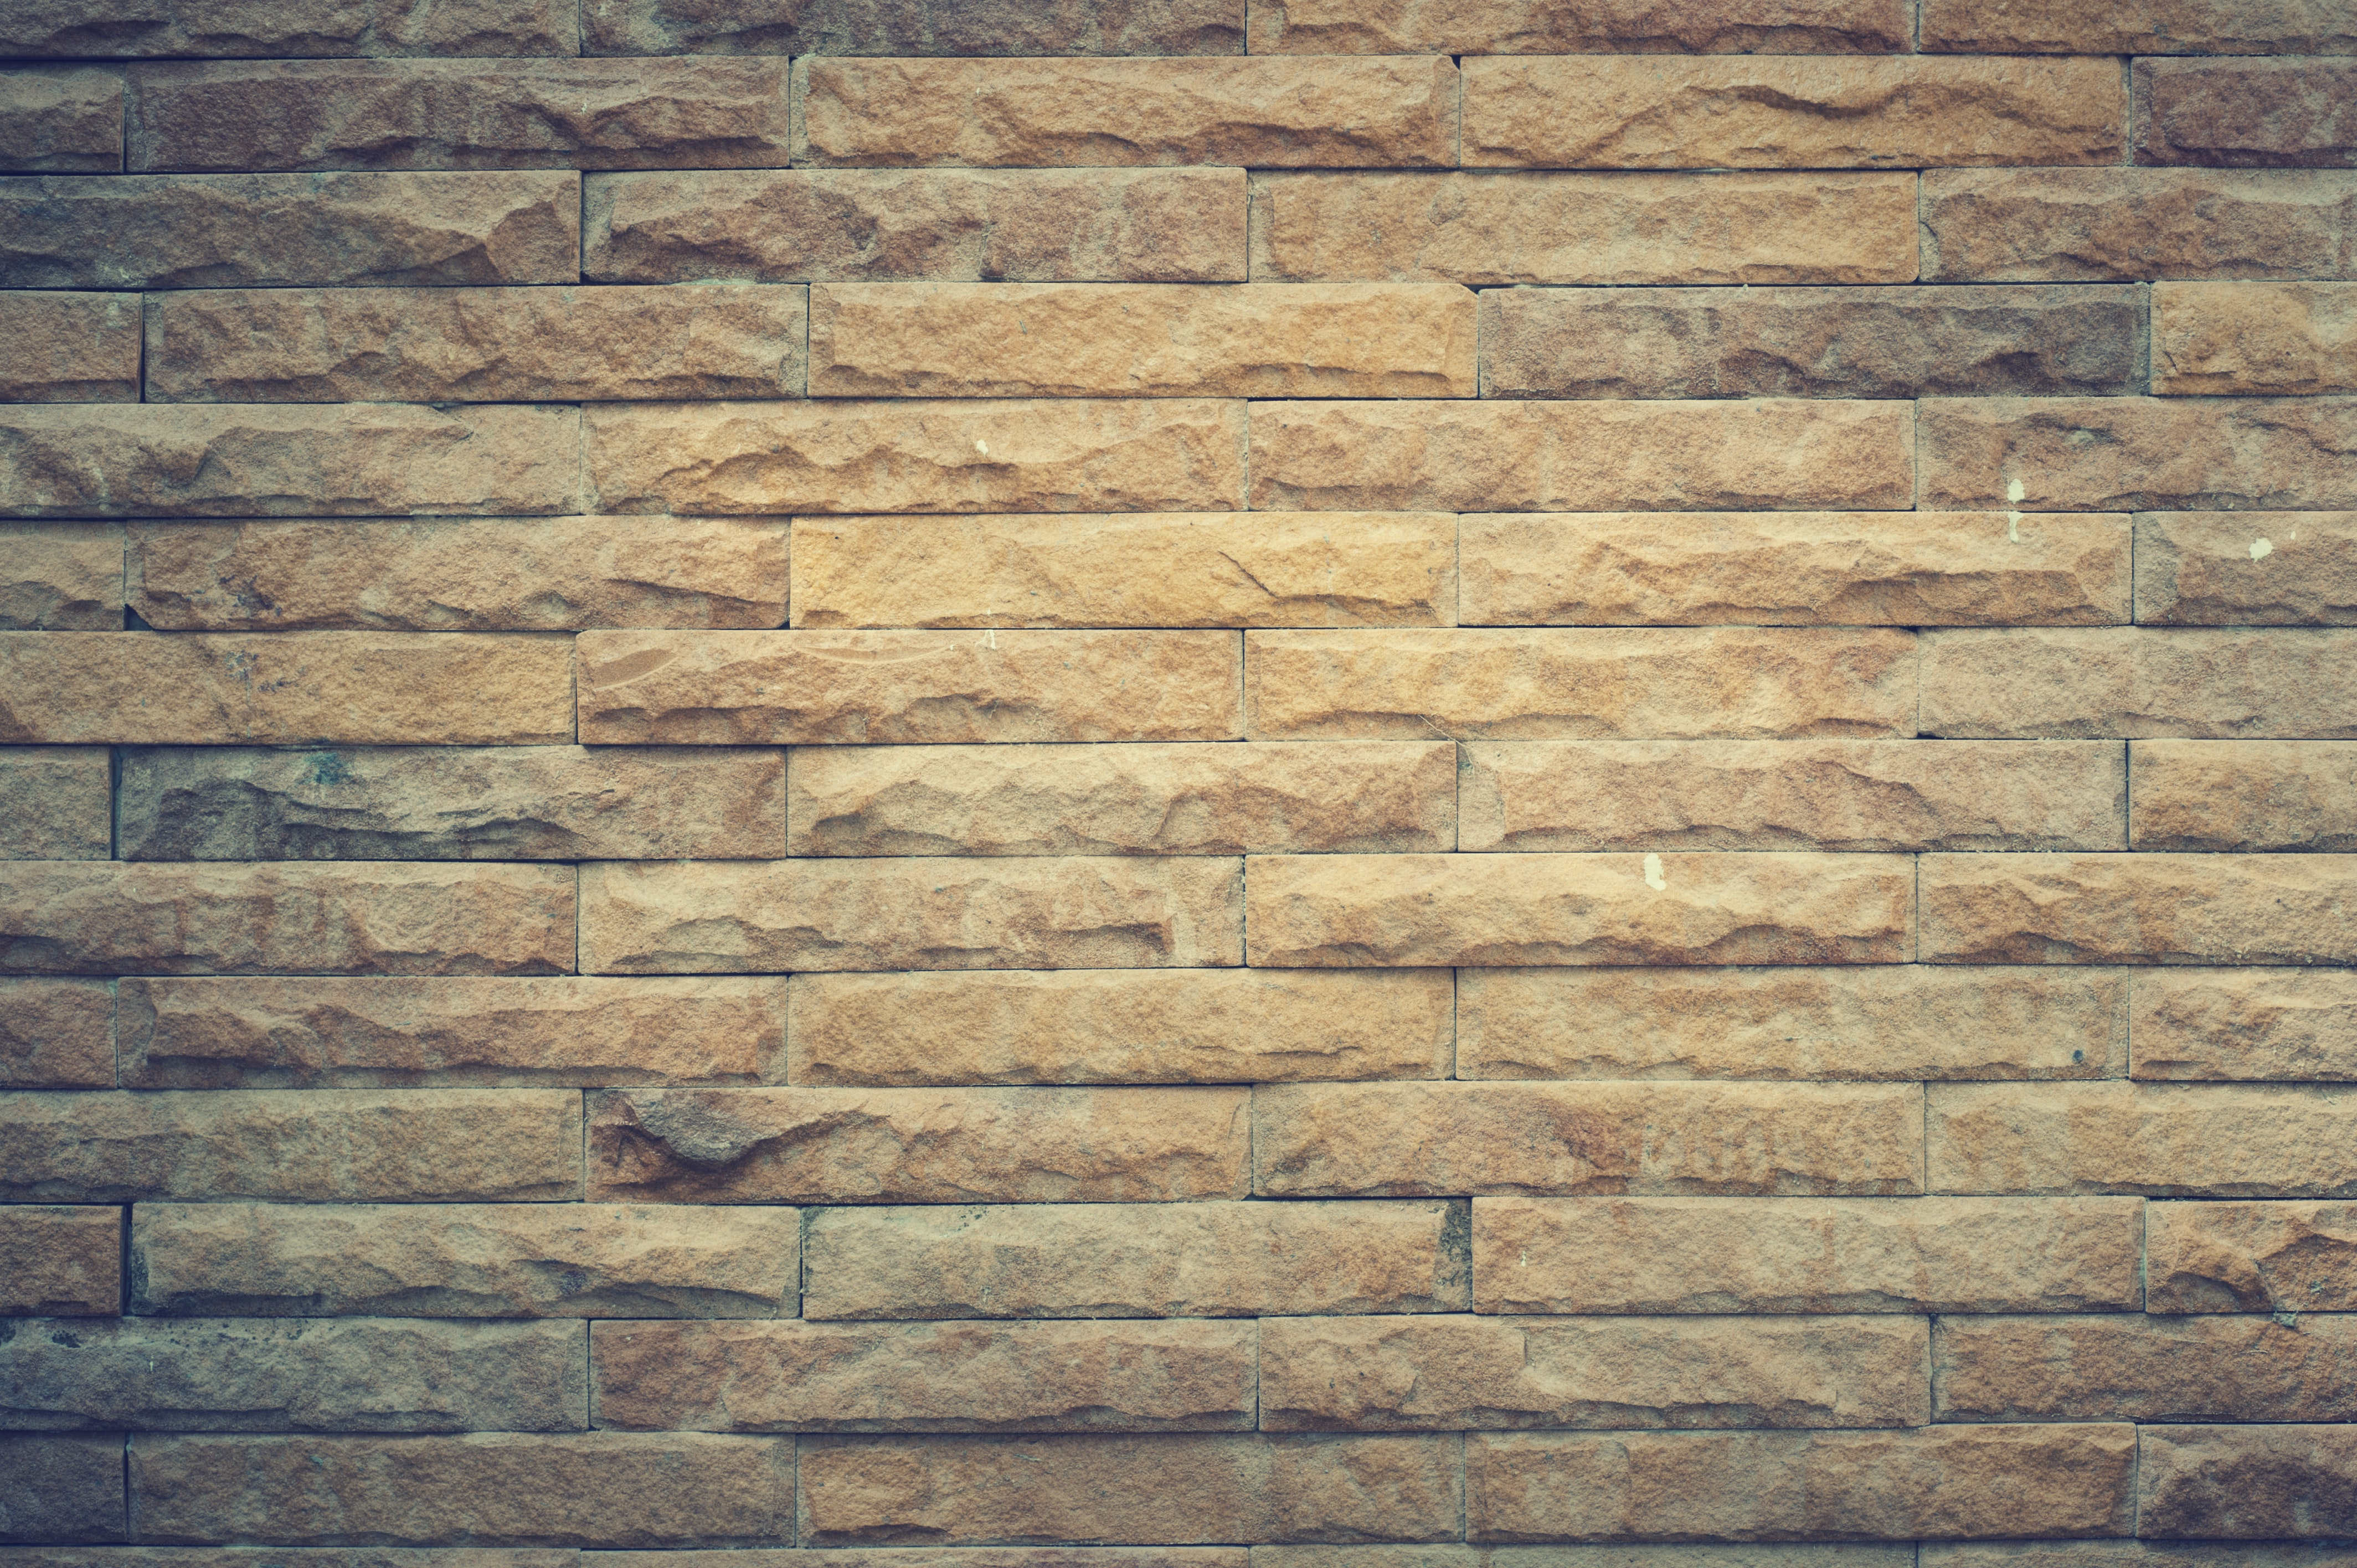 Yellow Brick Wall, Aged, Surface, Rectangle, Rough, HQ Photo